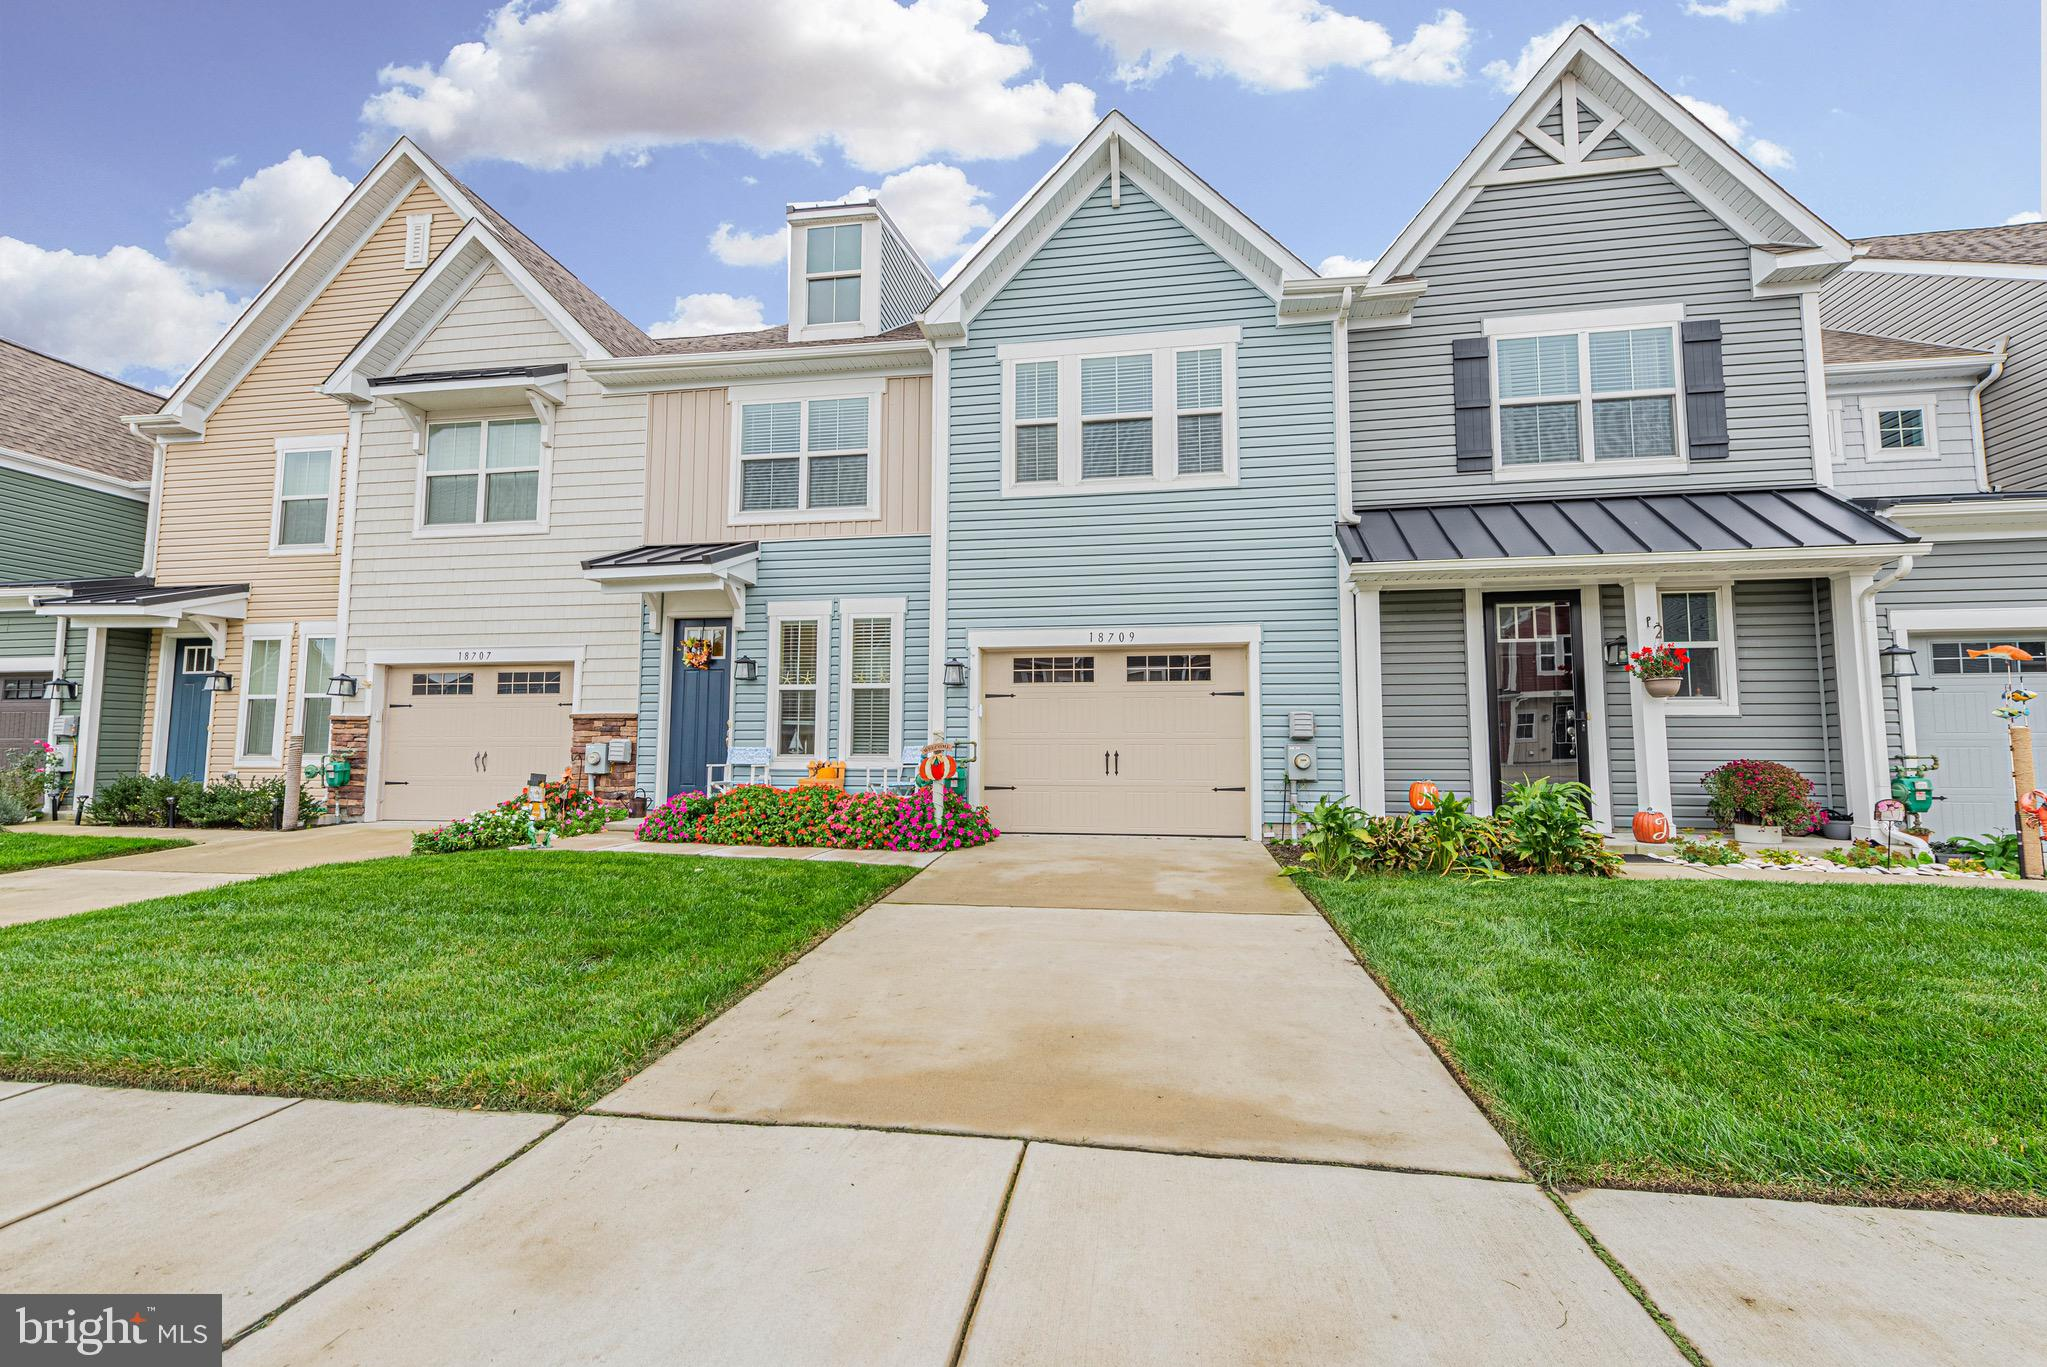 The perfect size townhouse is now available in the wonderful community of Bishop's Landing. This car